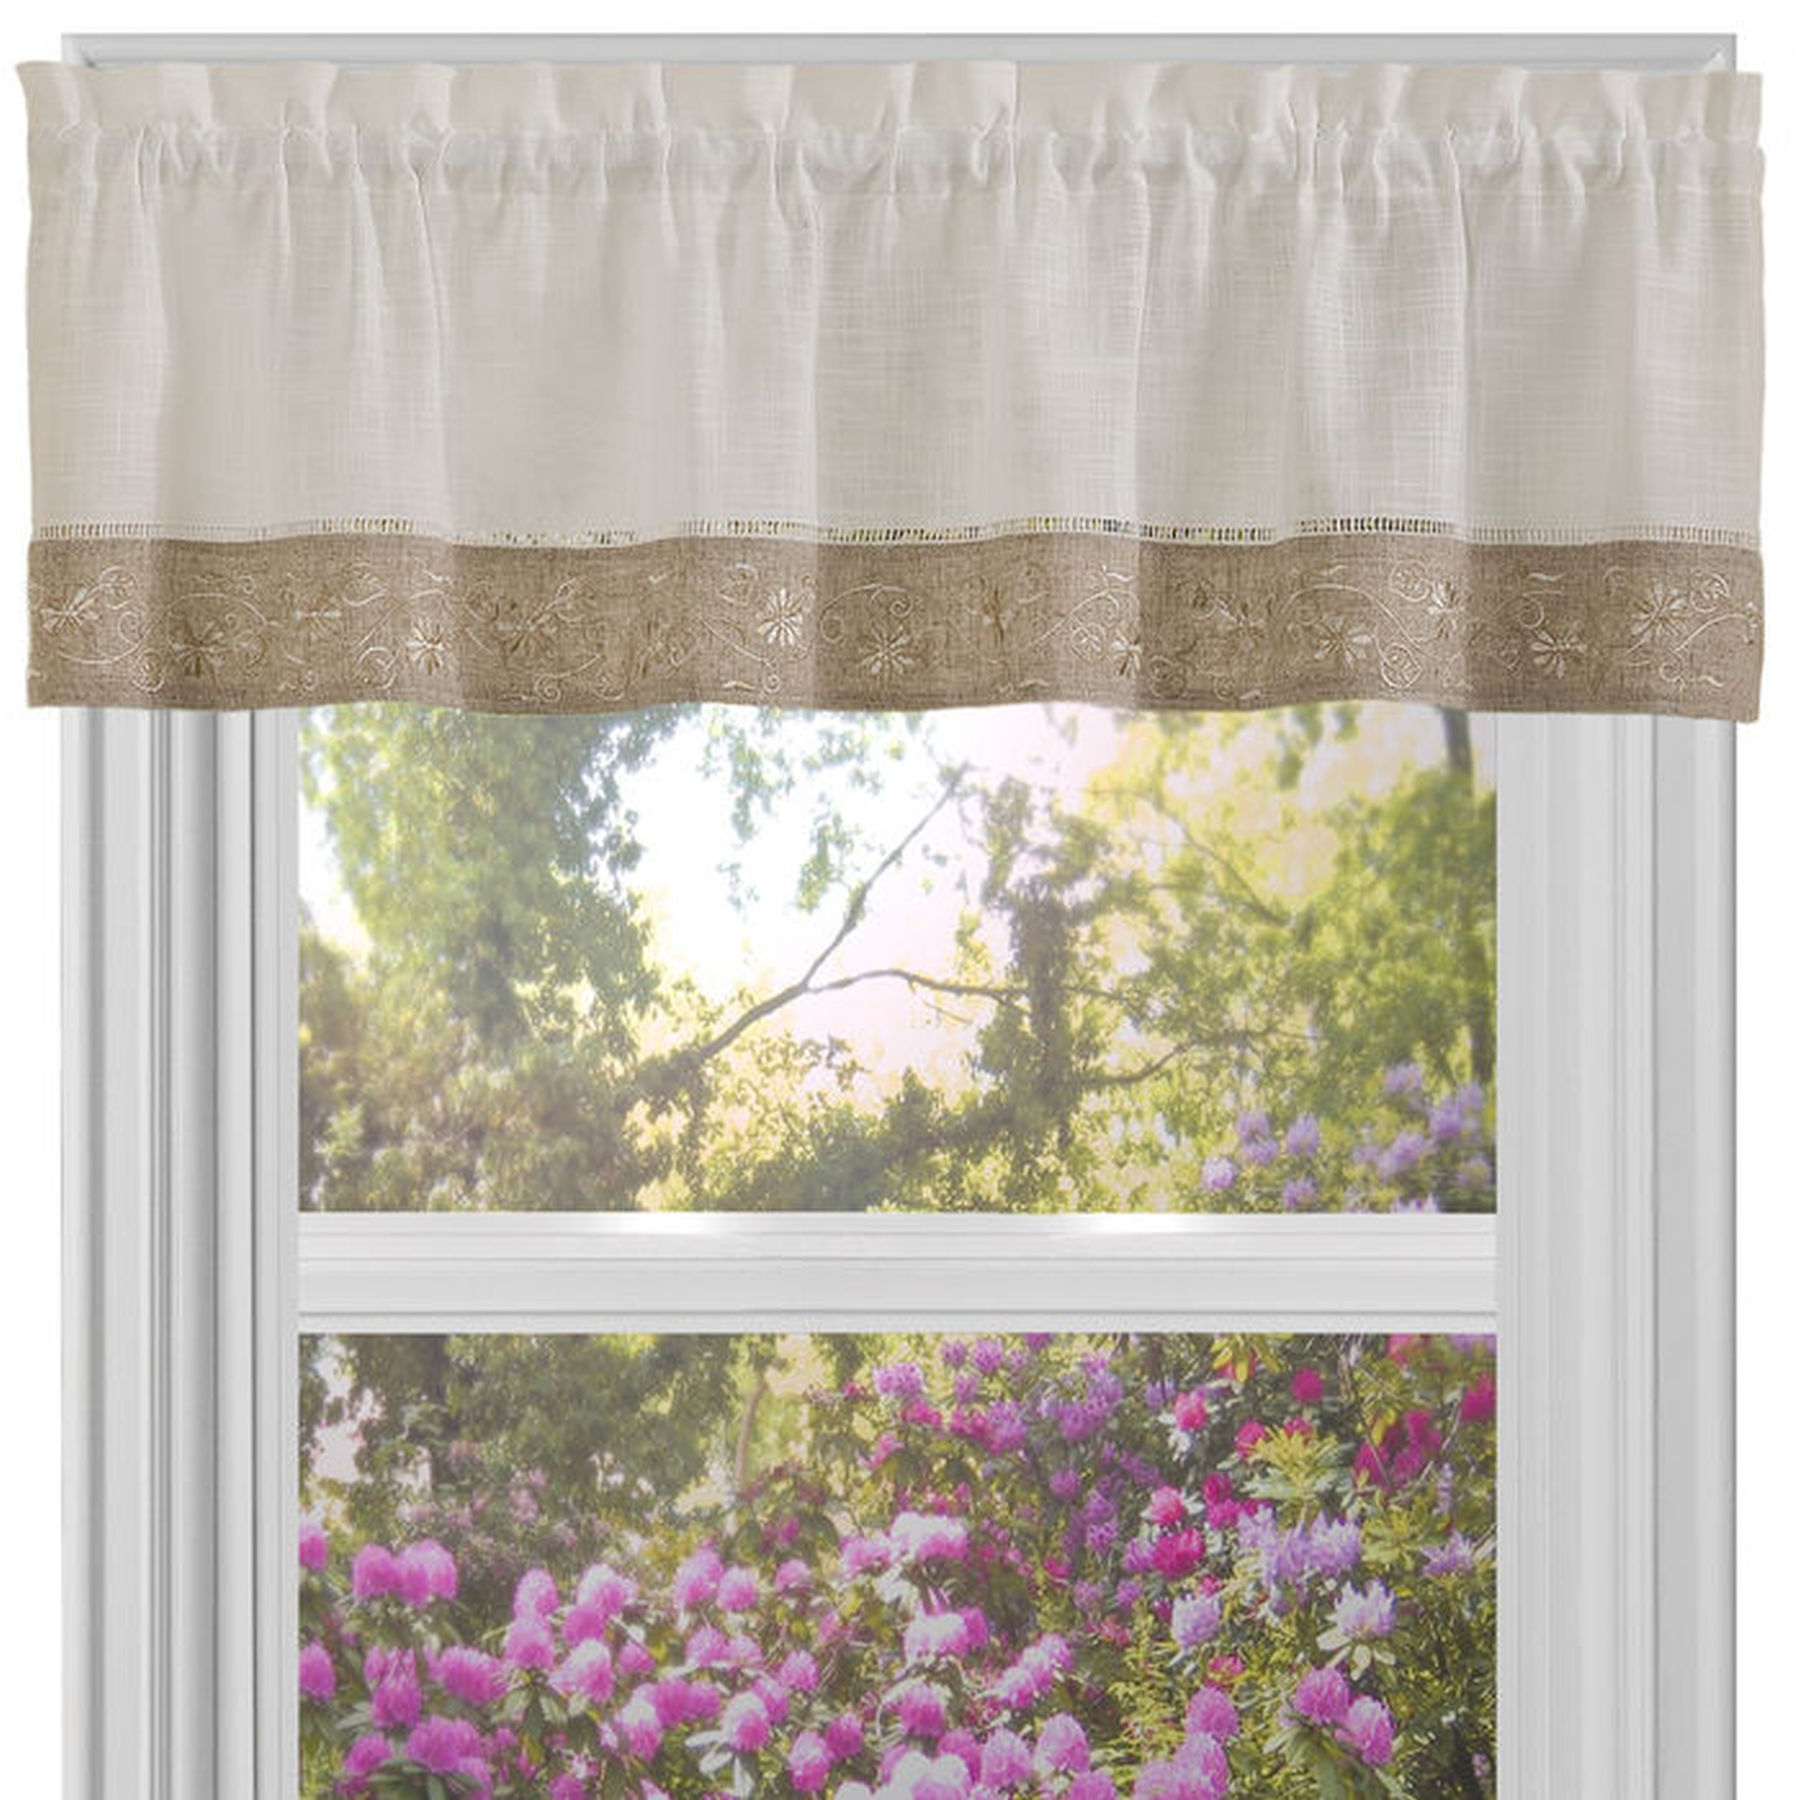 Oakwood Linen Style Decorative Window Curtain Tier Sets Within Favorite Traditional Elegance Oakwood 58X14 Window Curtain Valance – Natural (View 13 of 20)